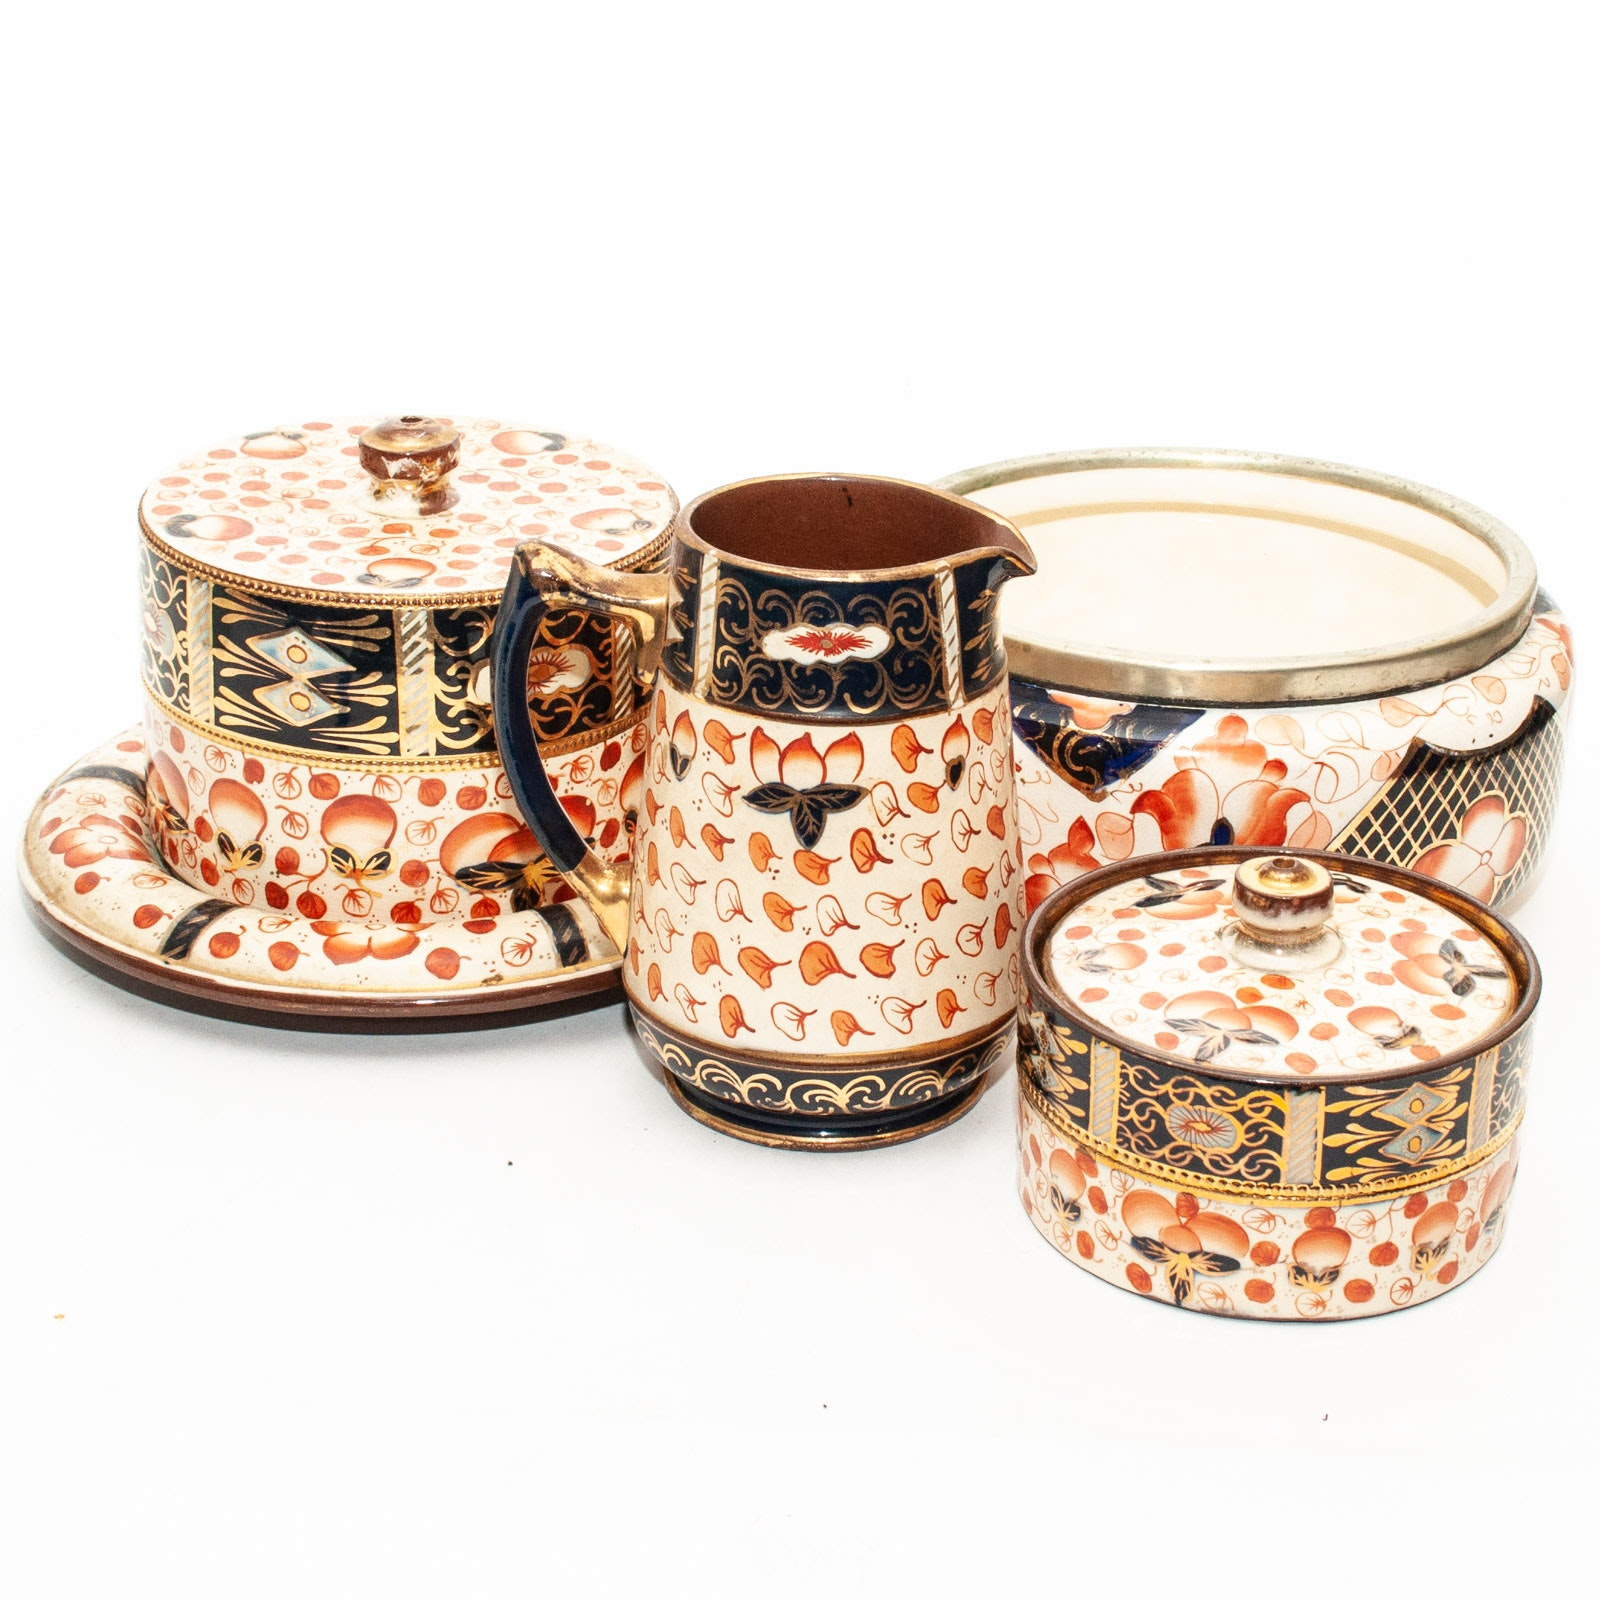 William Wood & Co. and Assorted Imari Patterned Eartenware Tableware